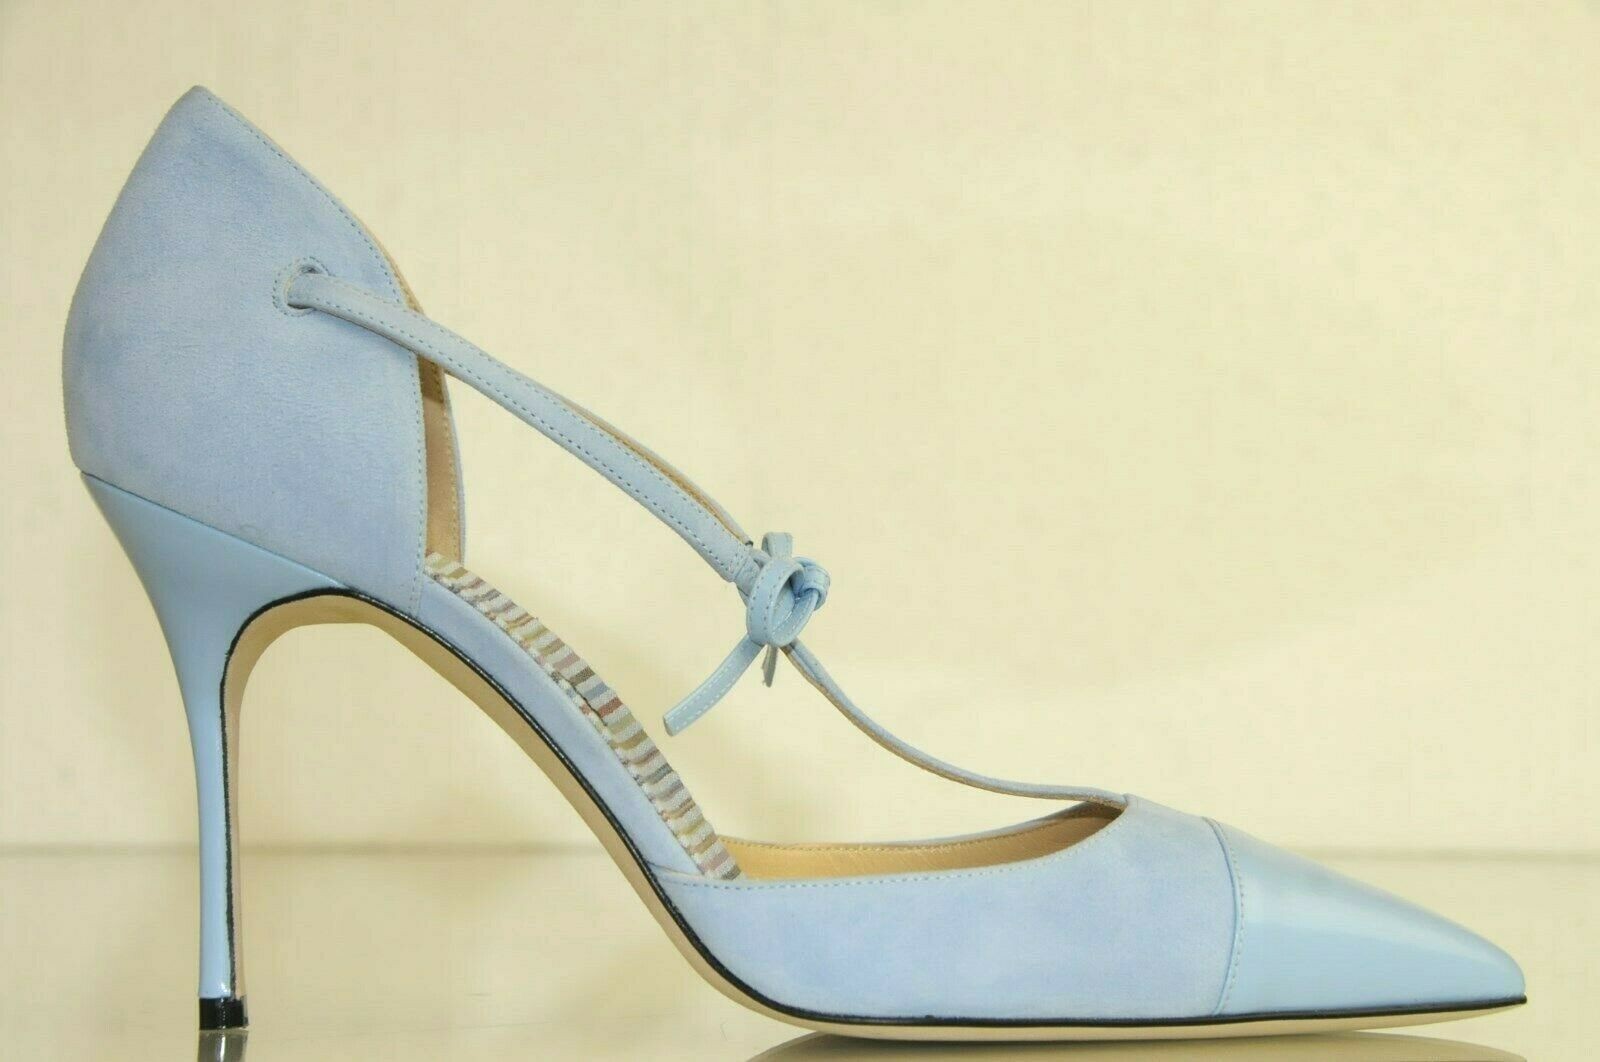 865 New Manolo Blahnik PARIGATAMA bluee Suede Leather Bow Ankle Strap shoes 41